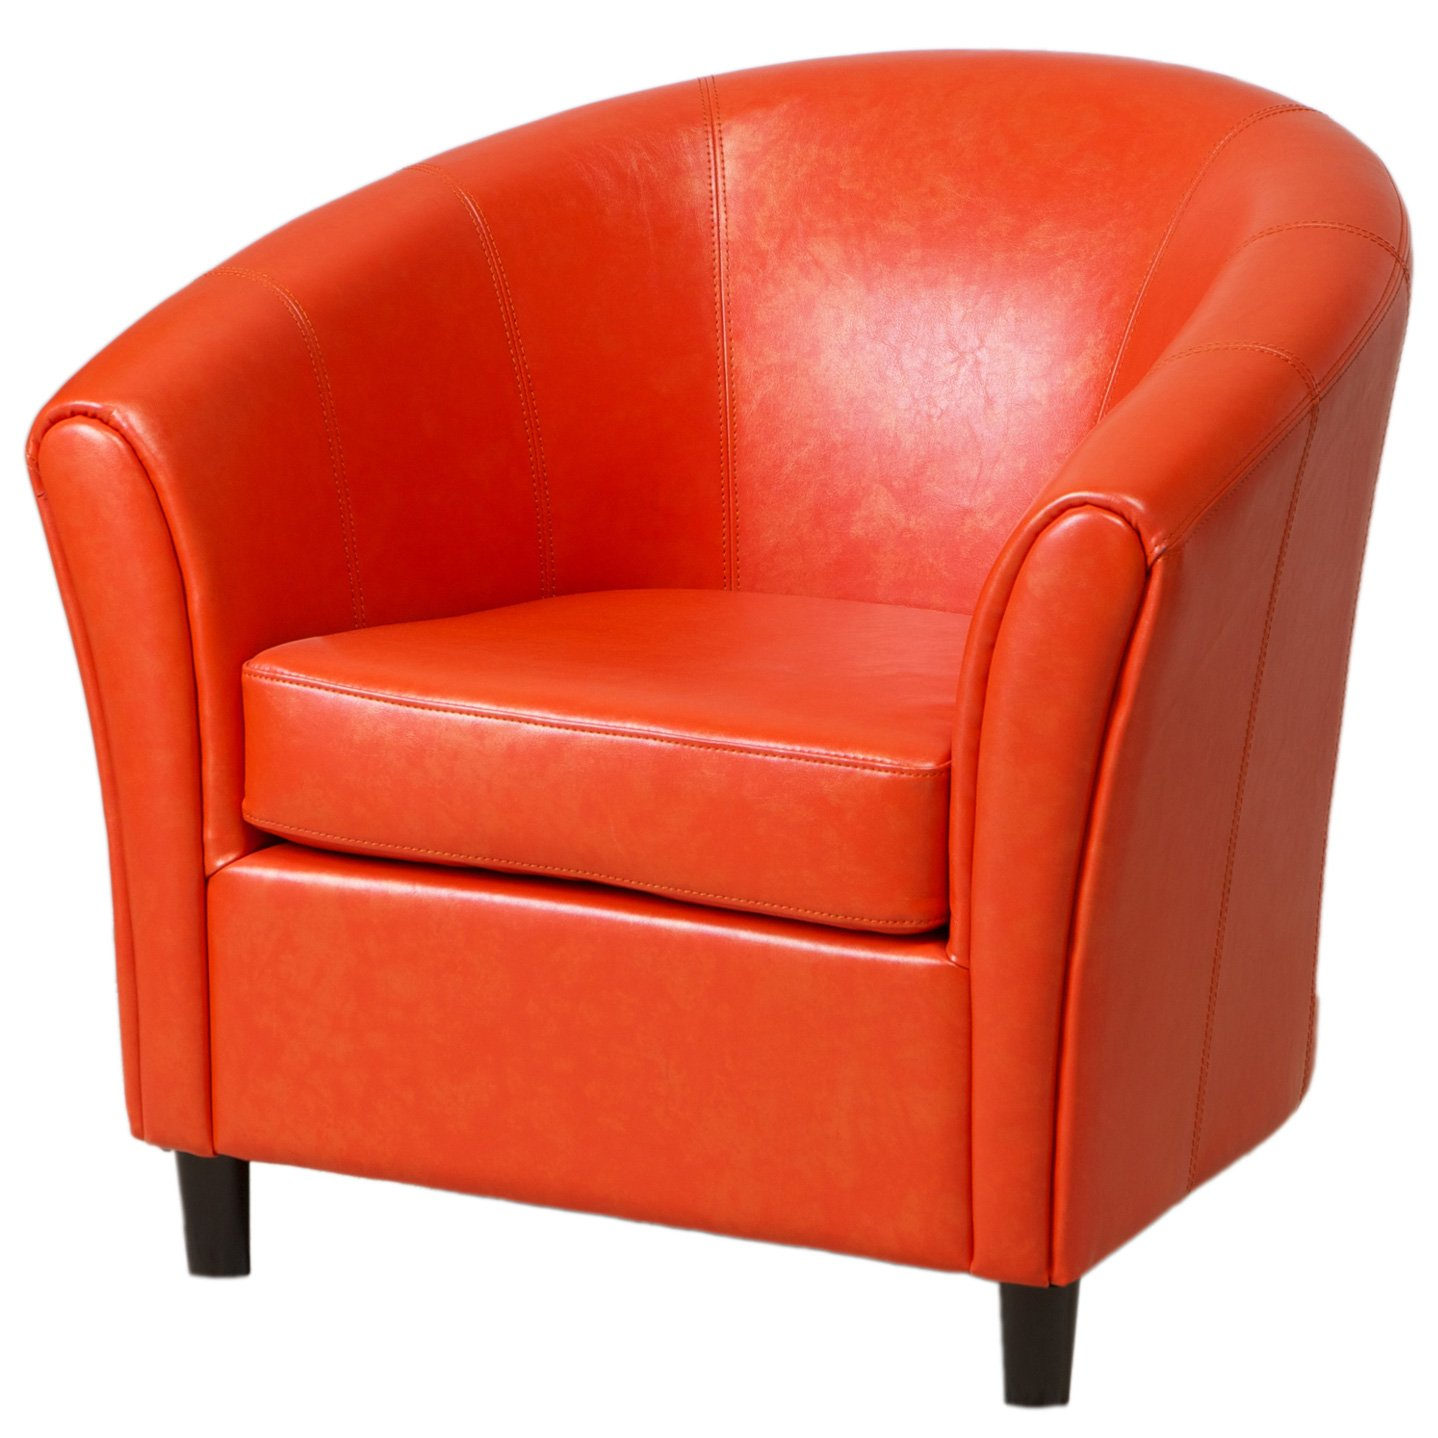 Amazon Best Selling Napoli Orange Leather Club Chair Kitchen